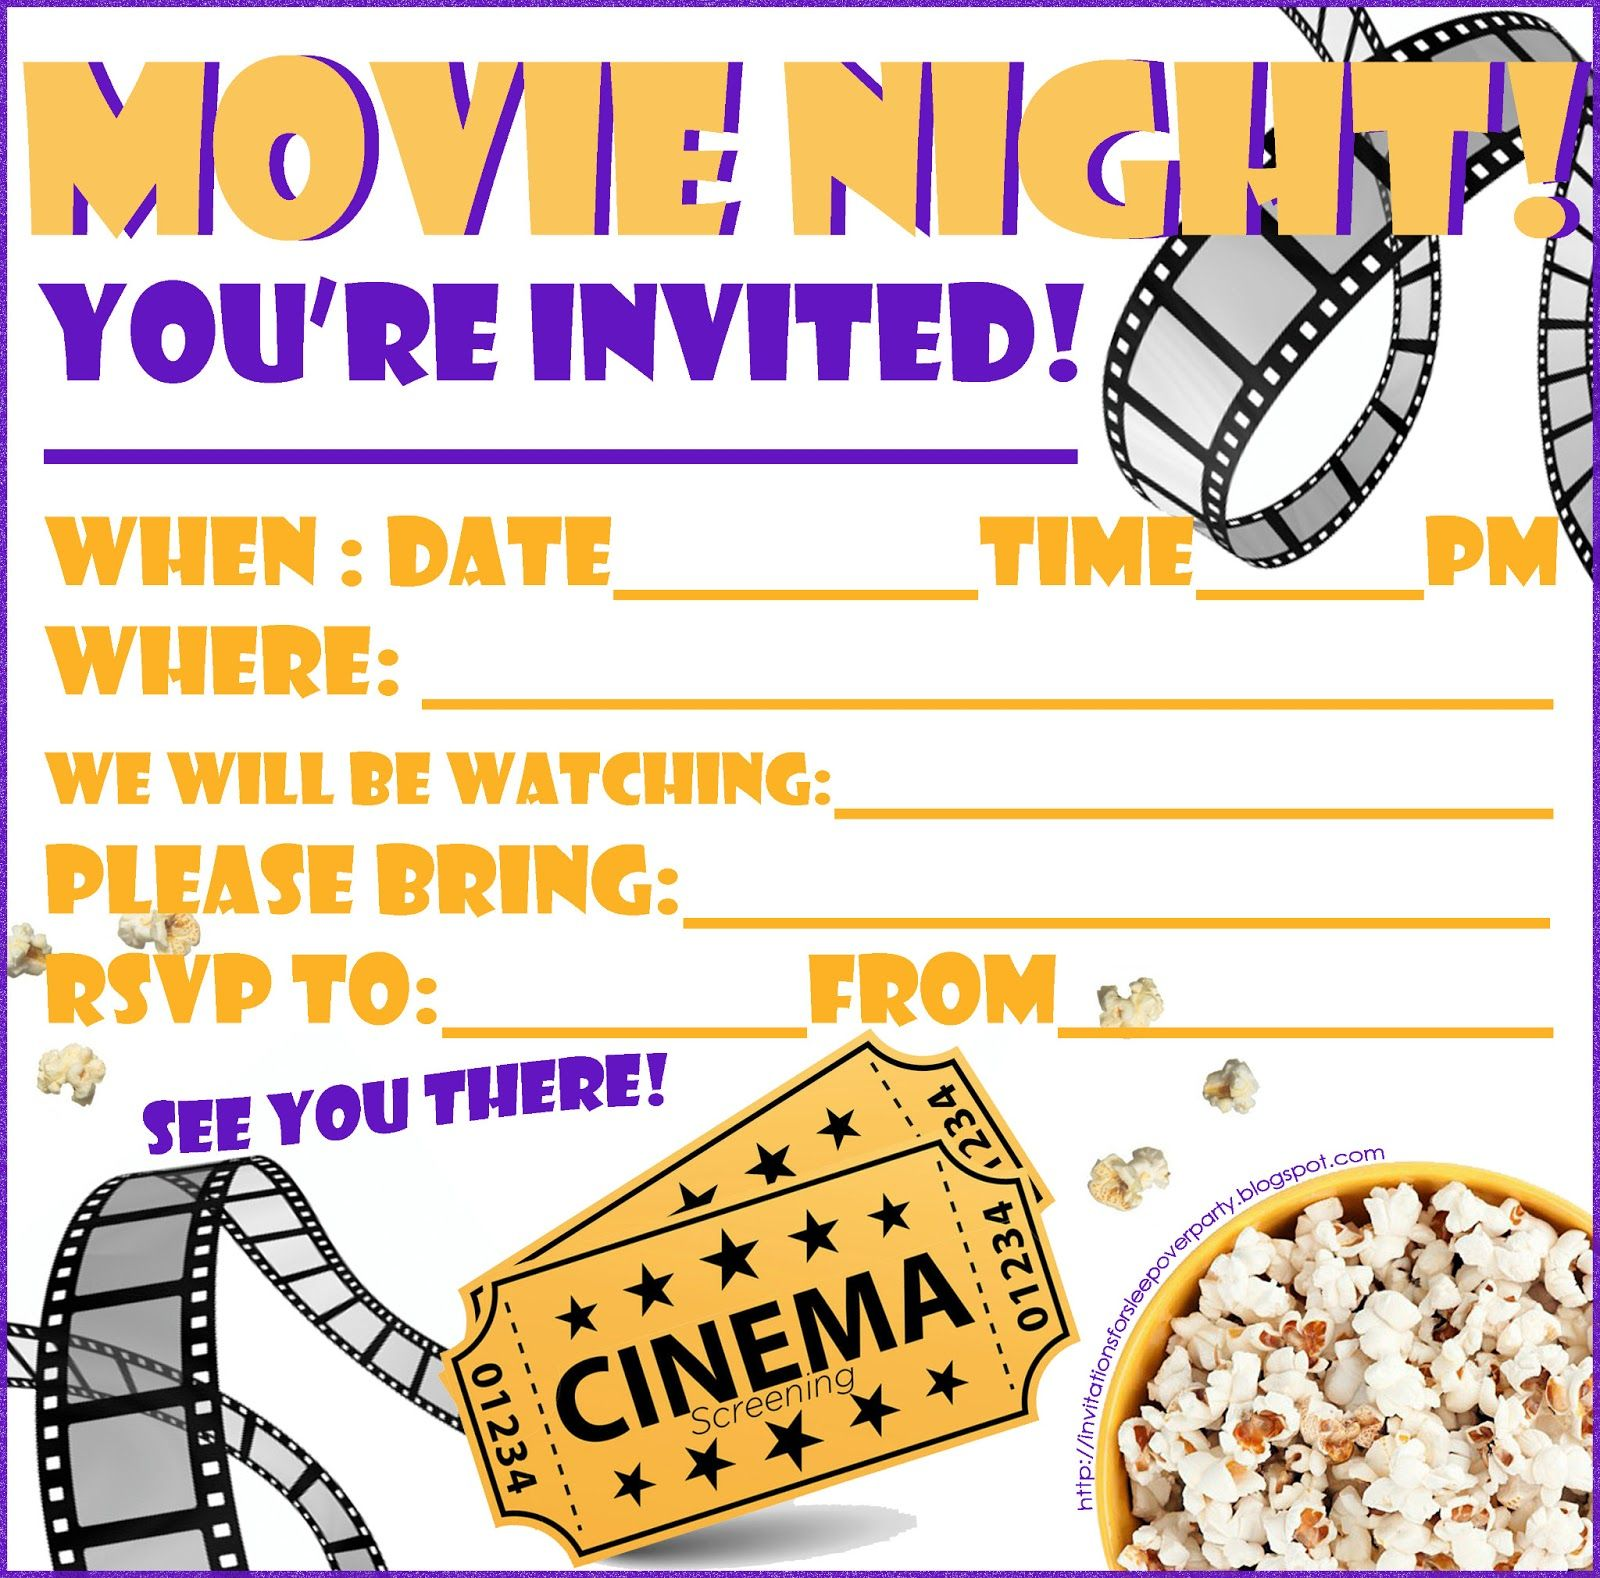 INVITATIONS FOR SLEEPOVER PARTY: MOVIE NIGHT INVITATION